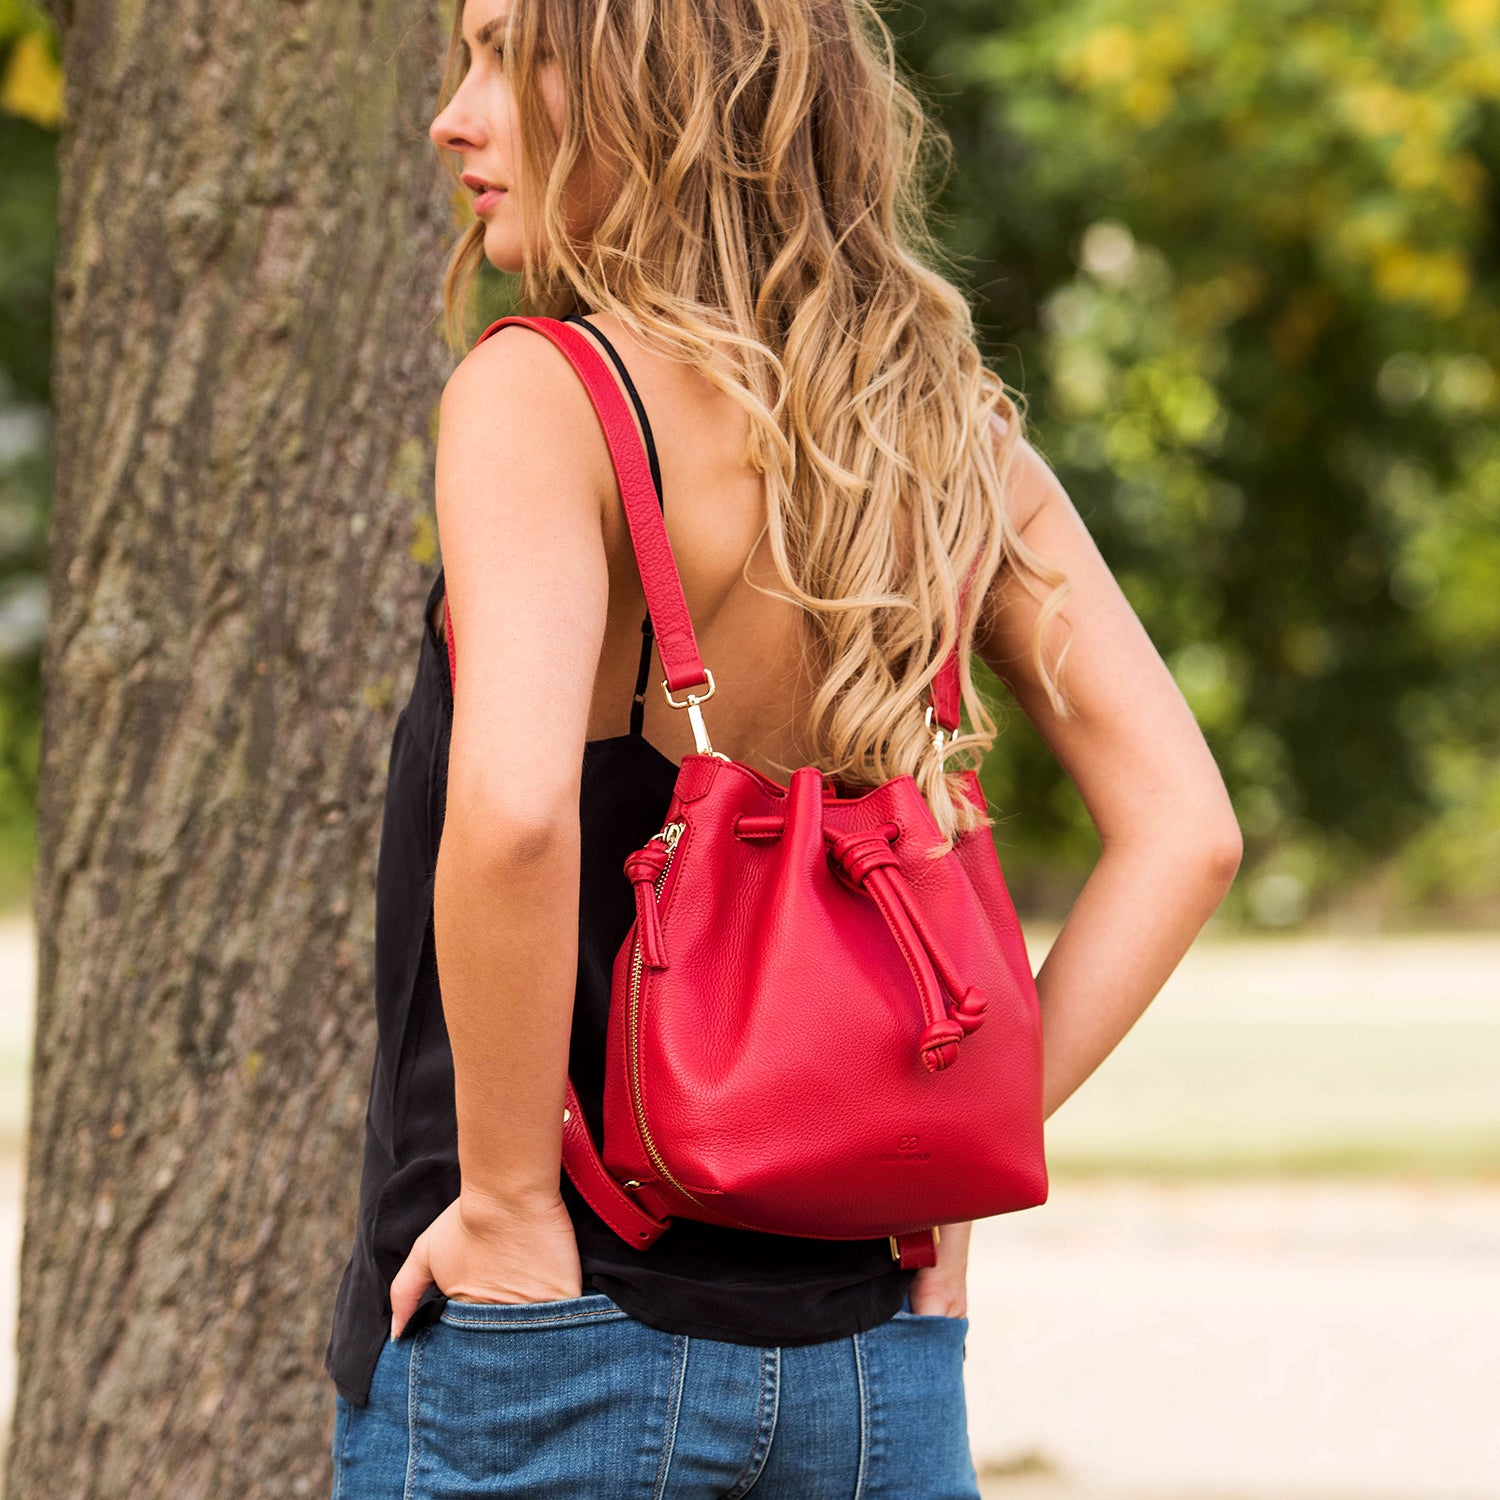 Model wearing a convertible medium leather bucket crossbody bag in burgundy and pink as a backpack.